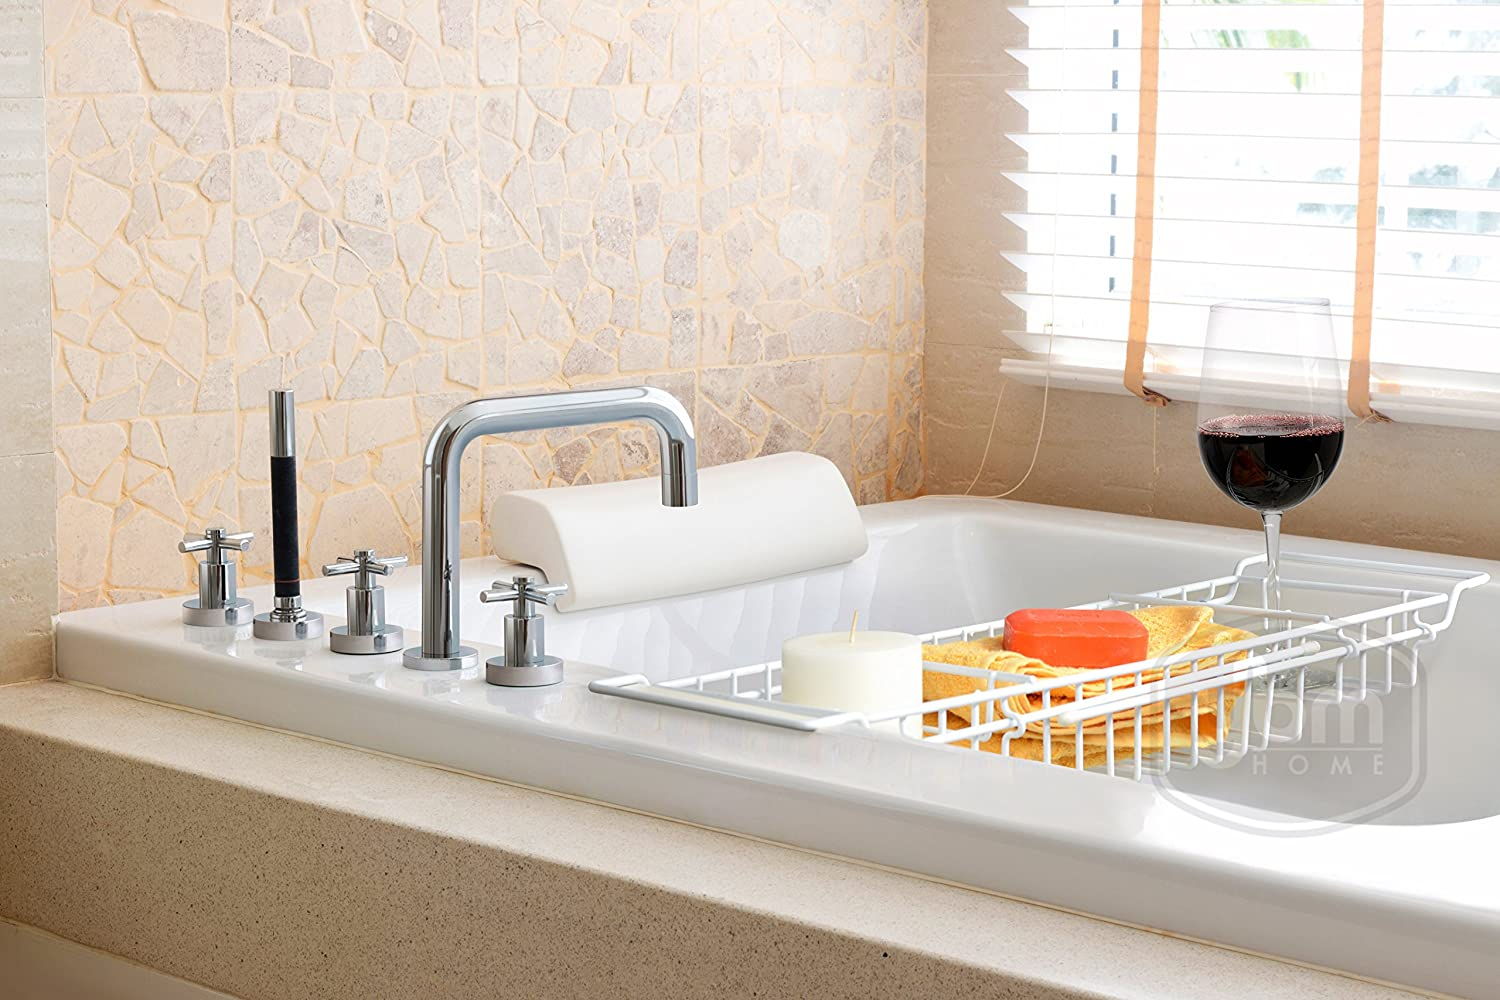 Amazon.com: Ybmhome Bathtub Caddy Tray with Extending Sides Shower ...